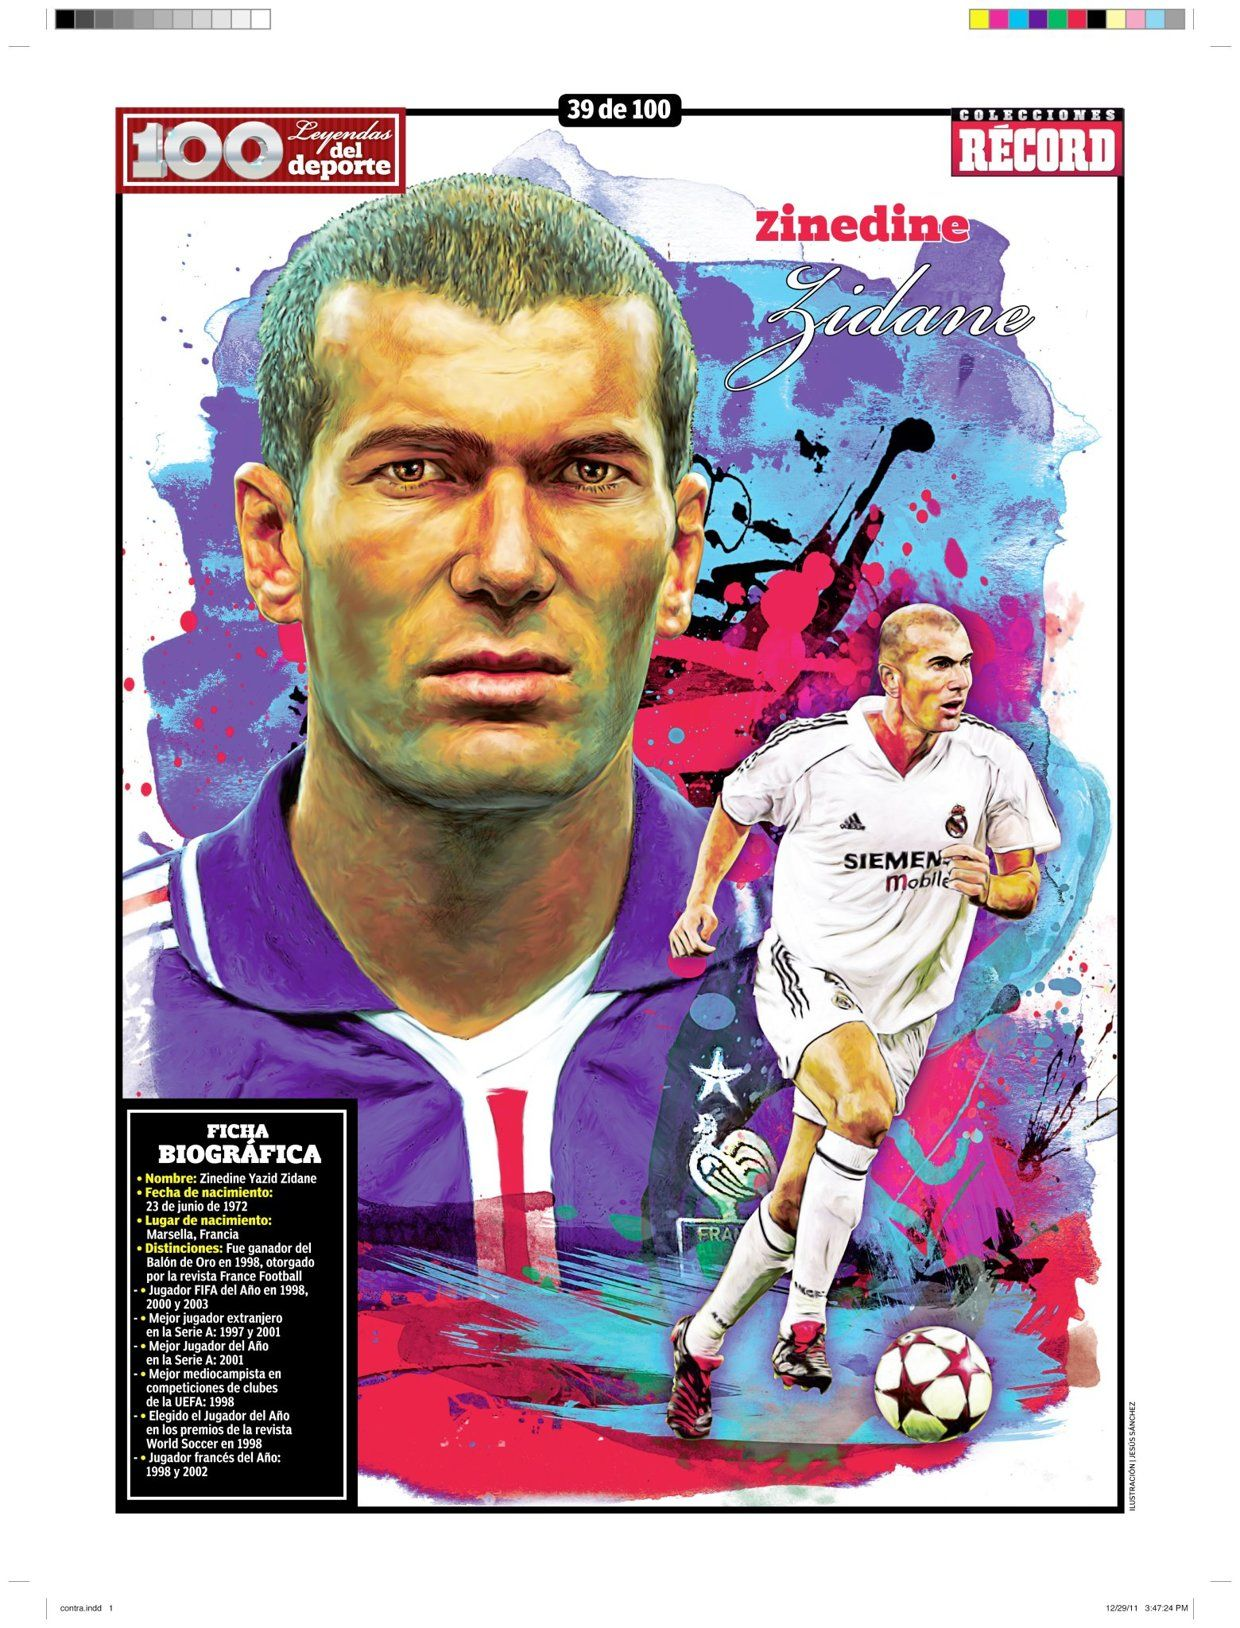 100 Leyendas Del Deporte 100 Sports Legends On Behance Football Soccer Artwork Soccer Art Zinedine Zidane